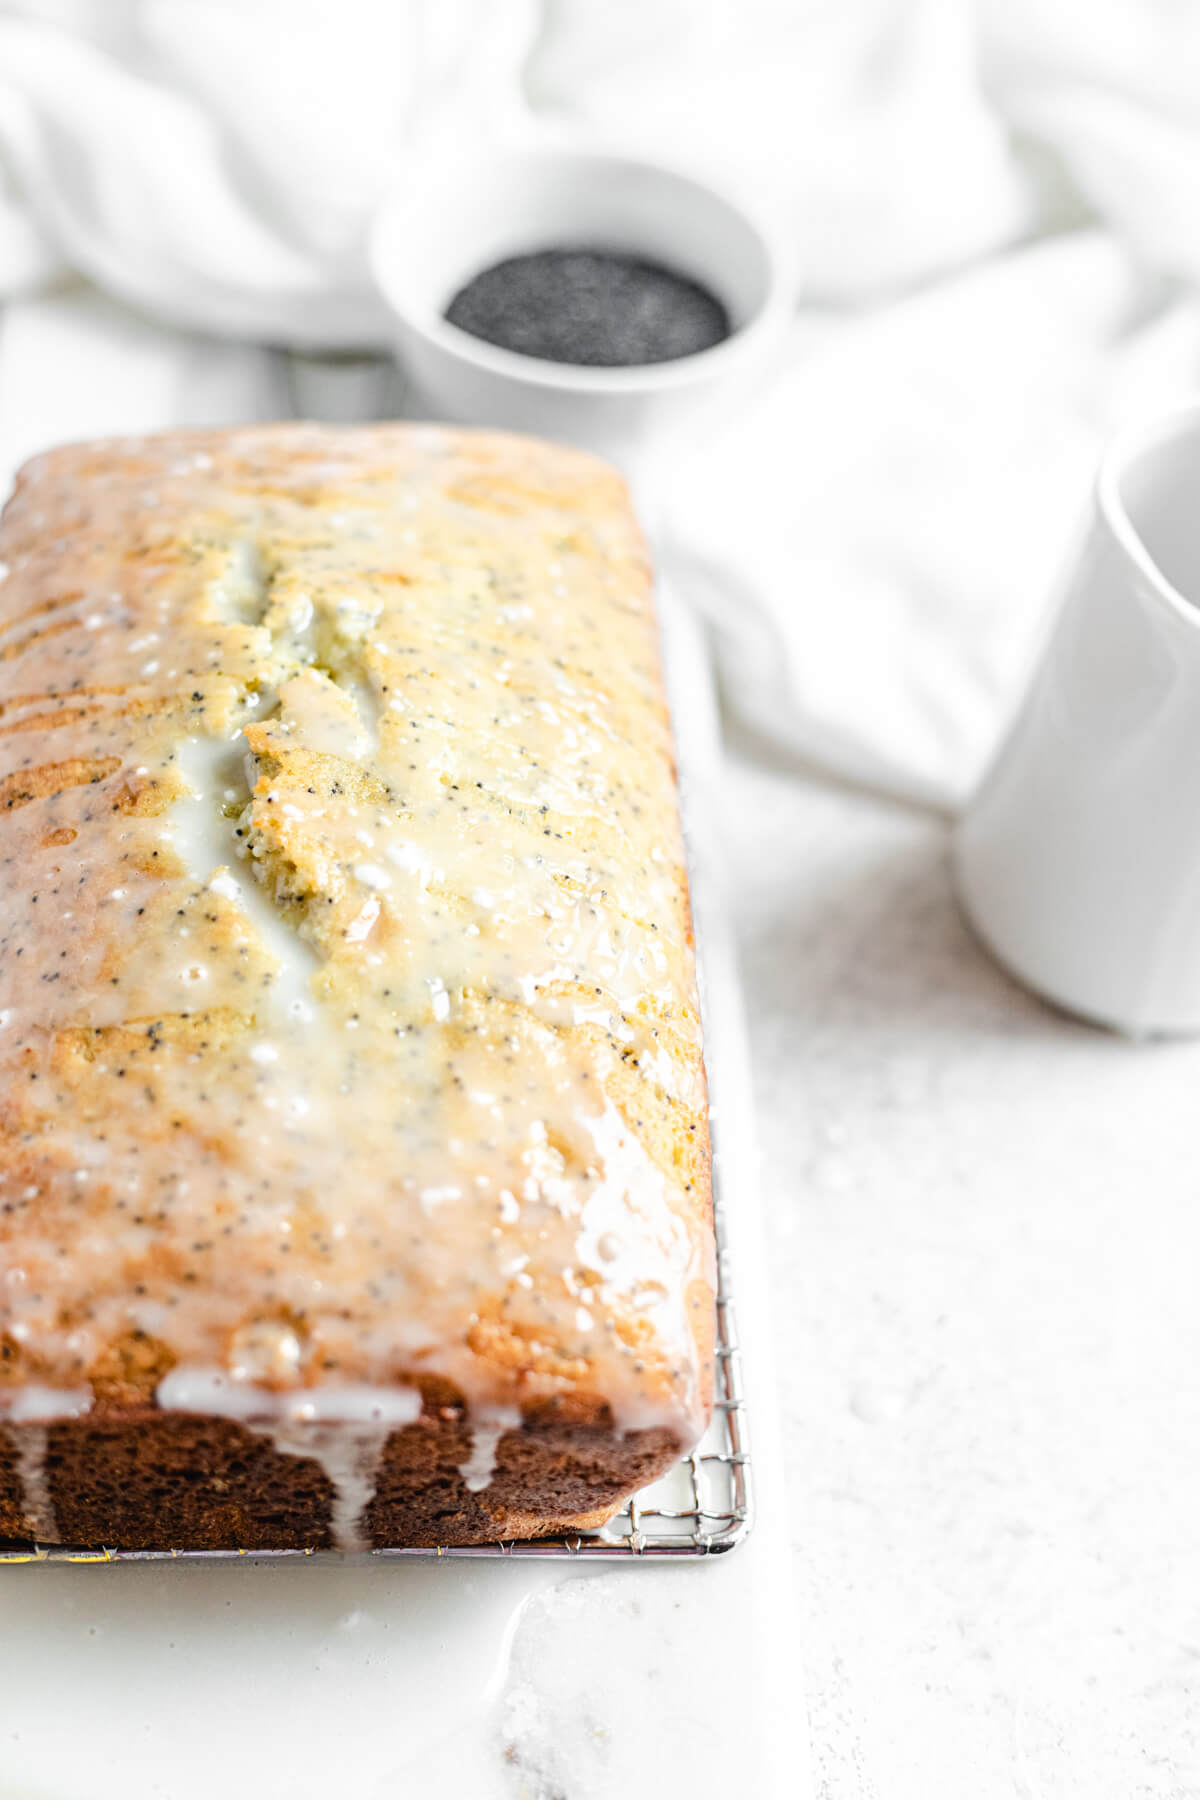 glazed loaf on a safety grater with a bowl of poppy seeds in the background